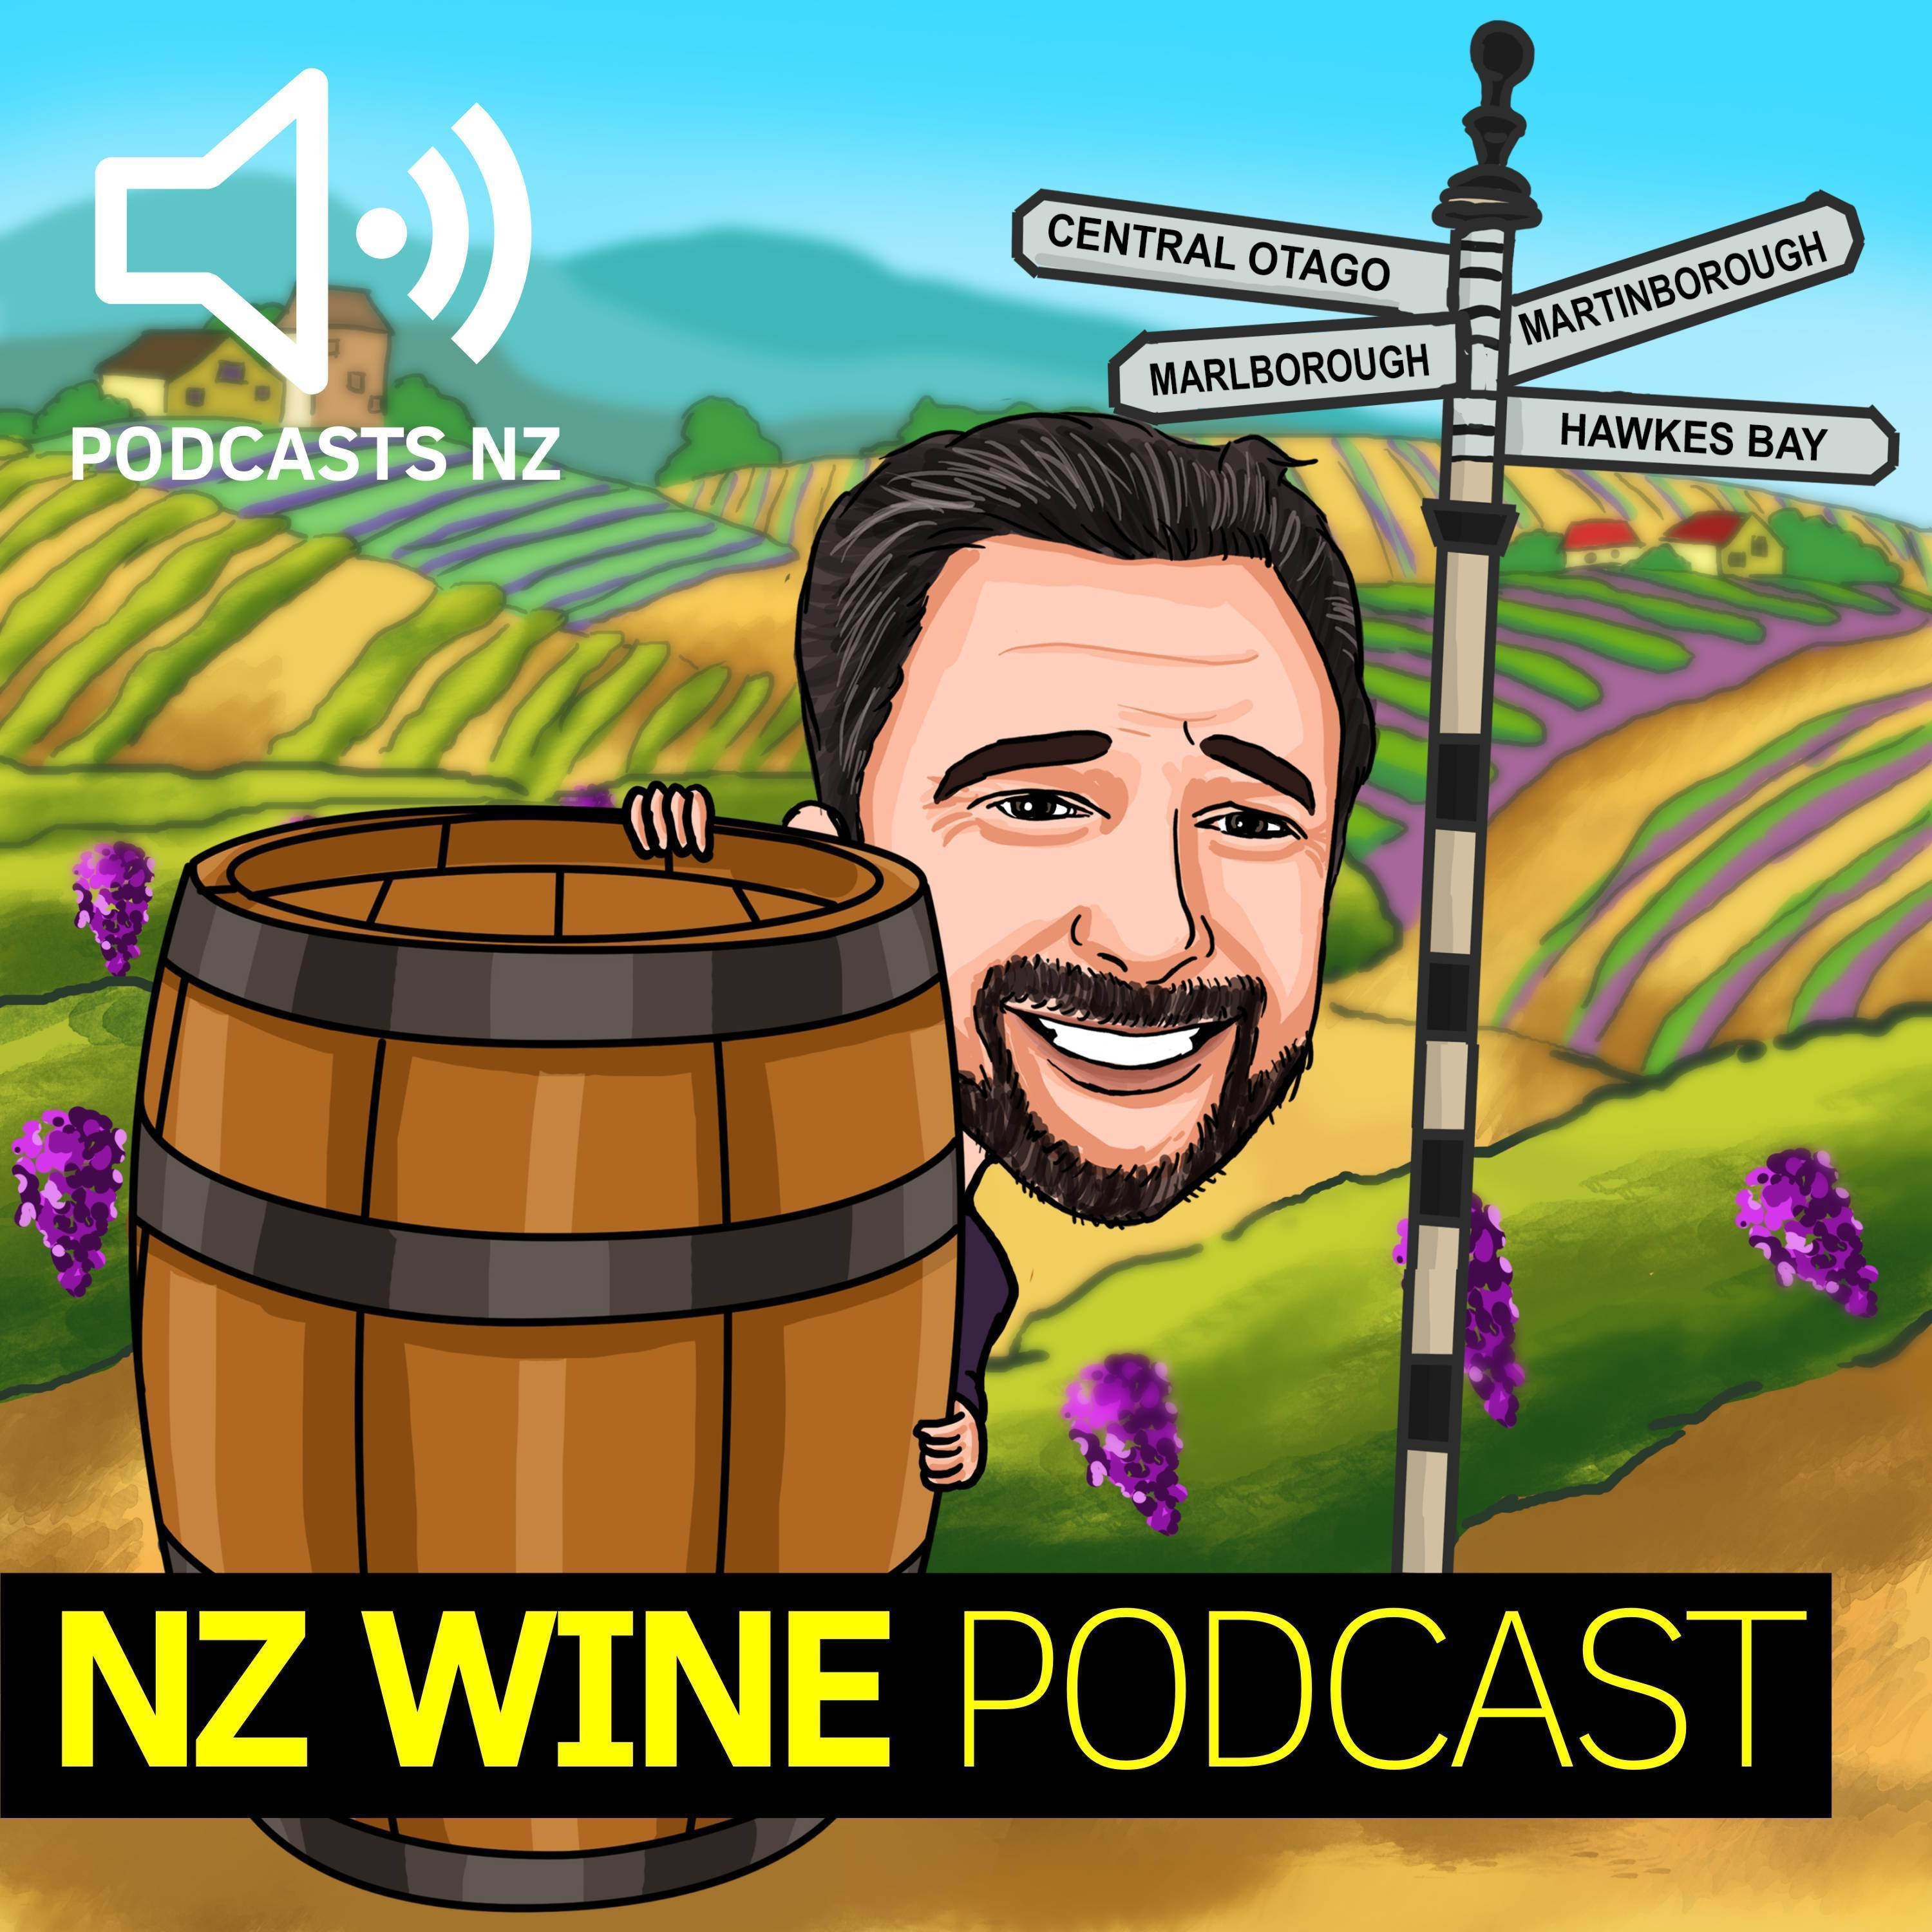 NZ Wine Podcast 54: Lee Winston - Untitled